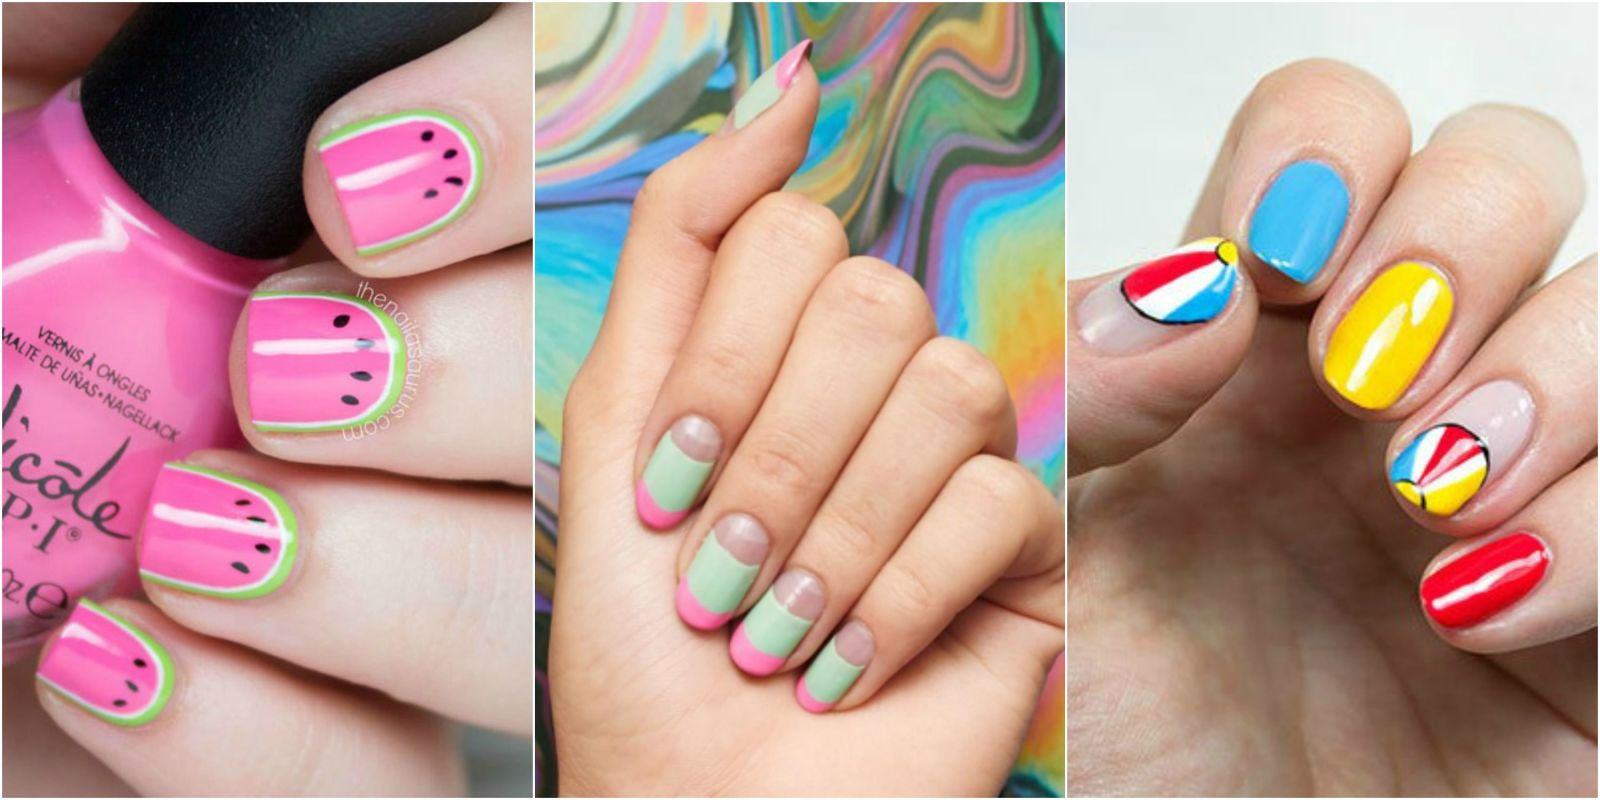 30 Summer Nail Designs for 2017 - Best Nail Polish Art Ideas for ...